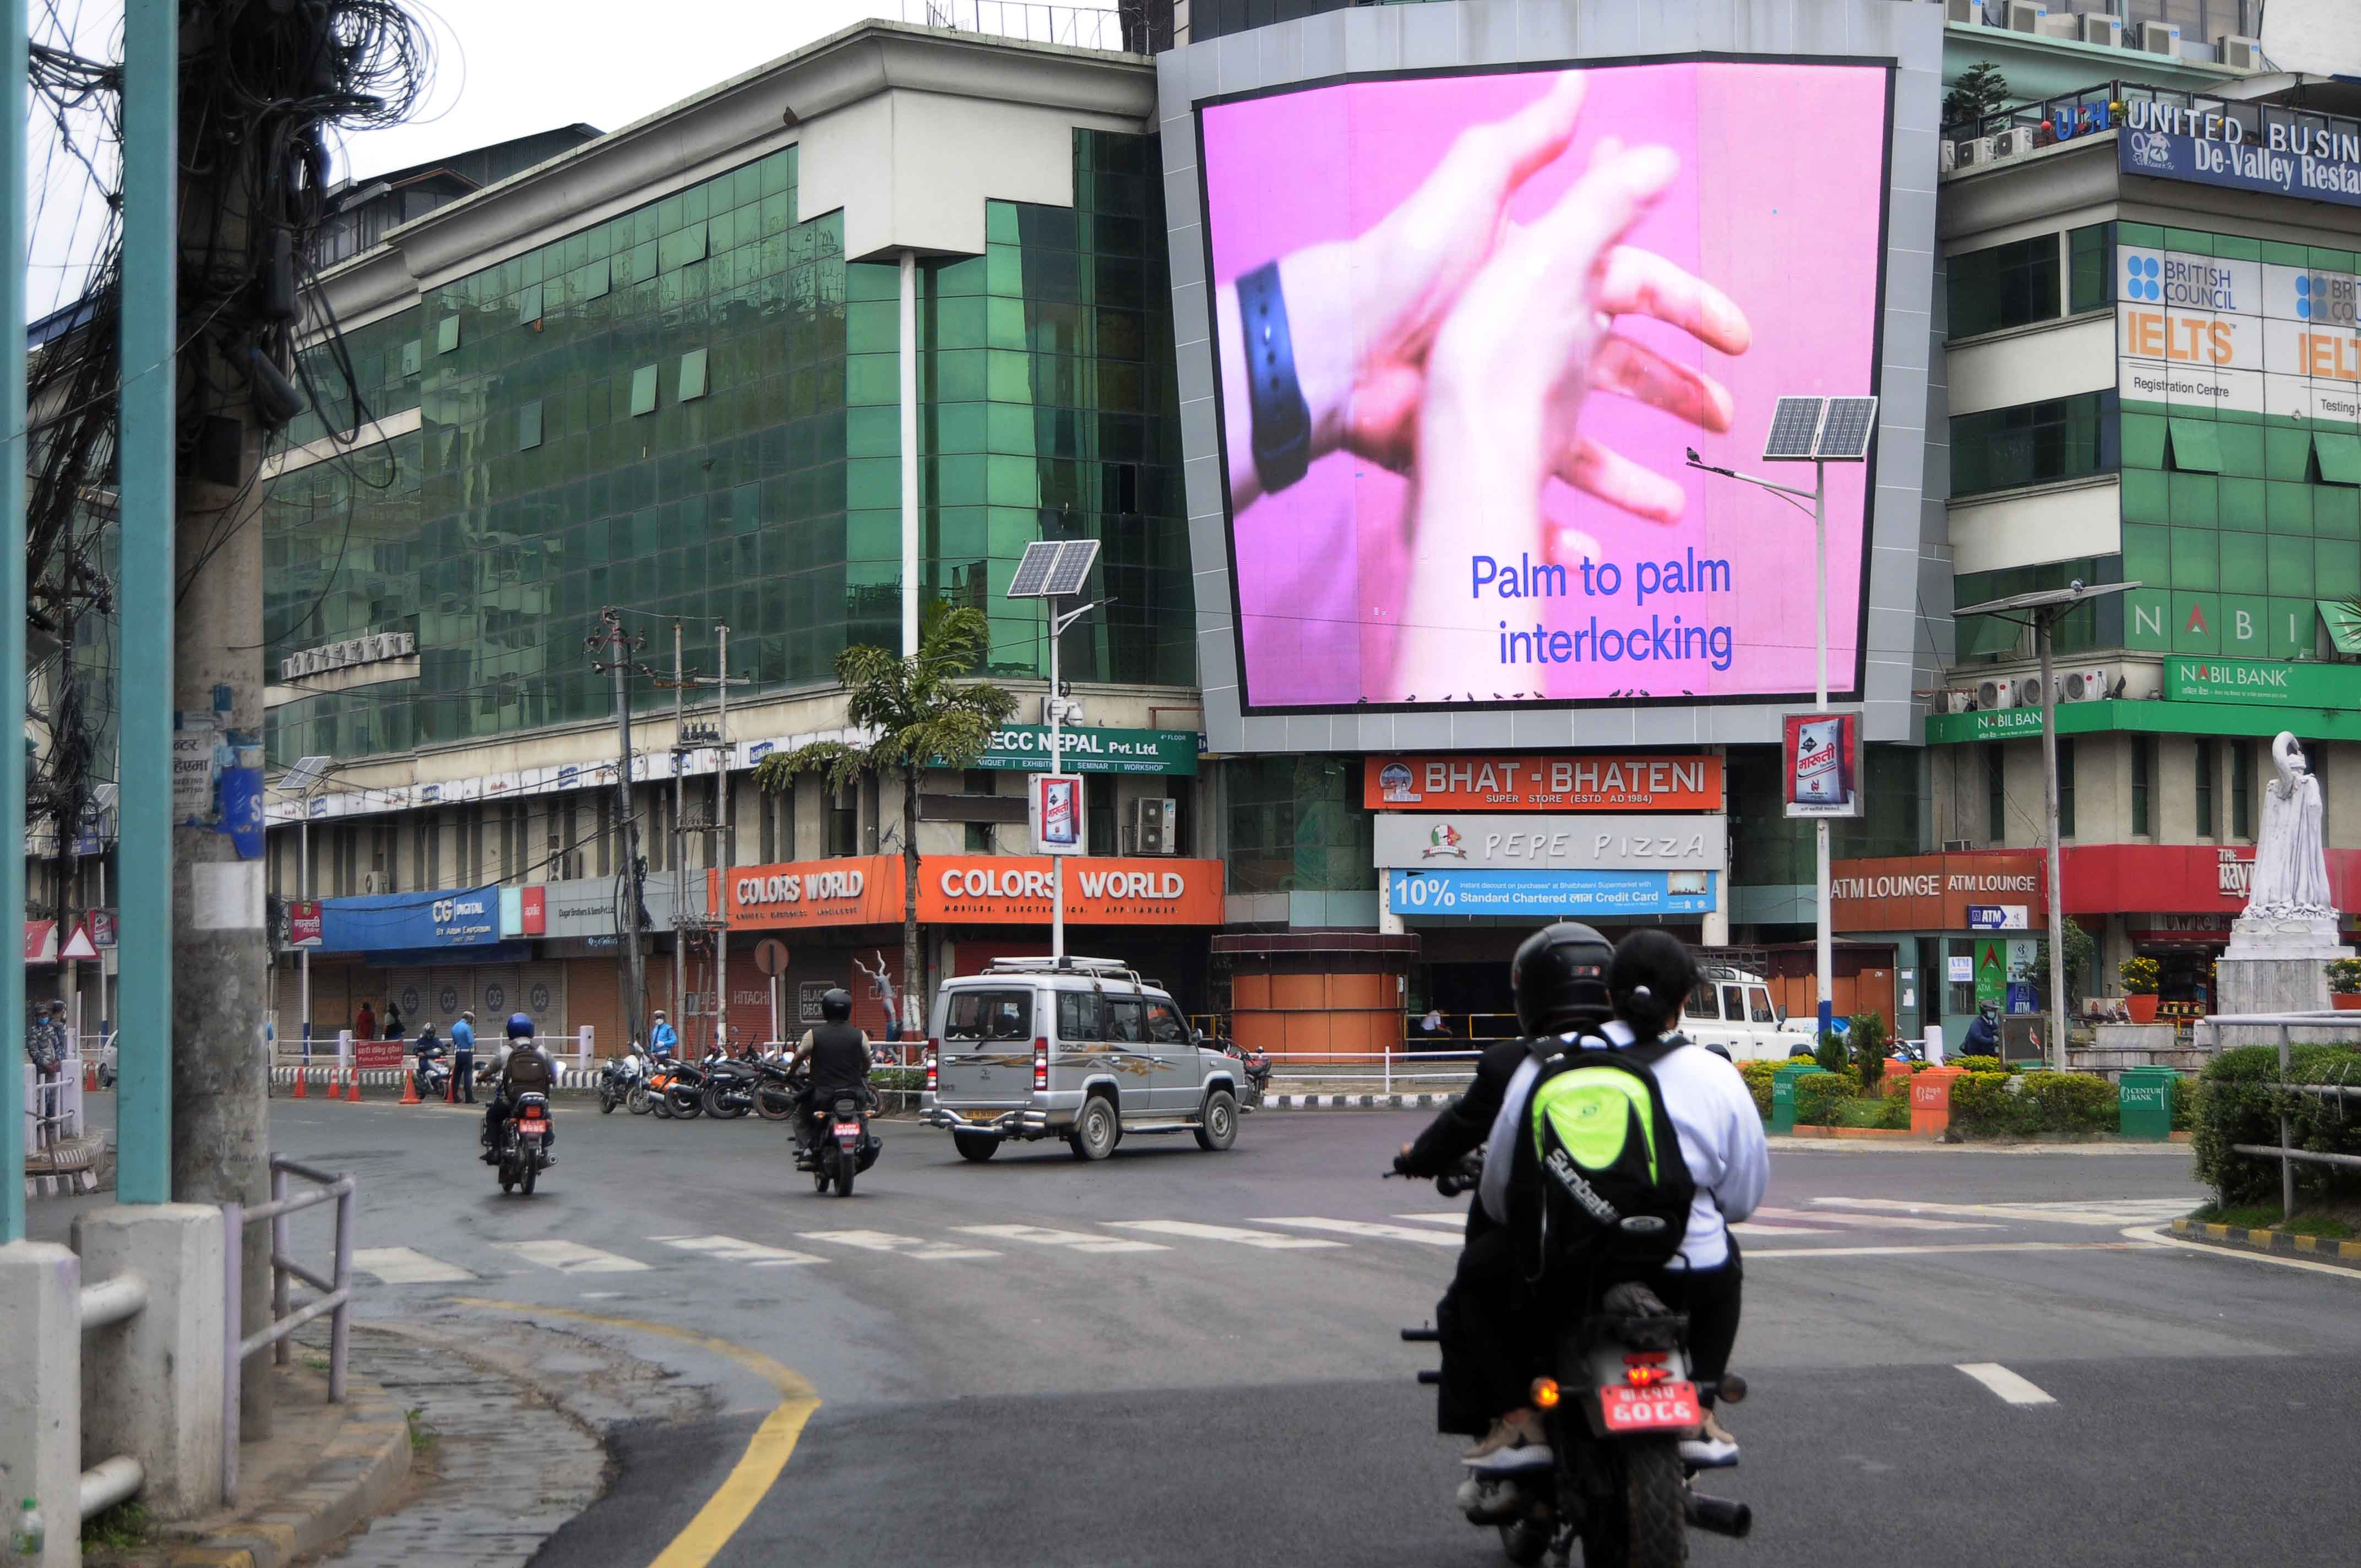 File - A screen displays the method of washing and sanitising hands for awareness on hand hygiene as a vital measure against COVID-19 transmission, in Tripureshwor, Kathmandu, on Tuesday, June 9, 2020. Photo: Balkrishna Thapa Chhetri/THT